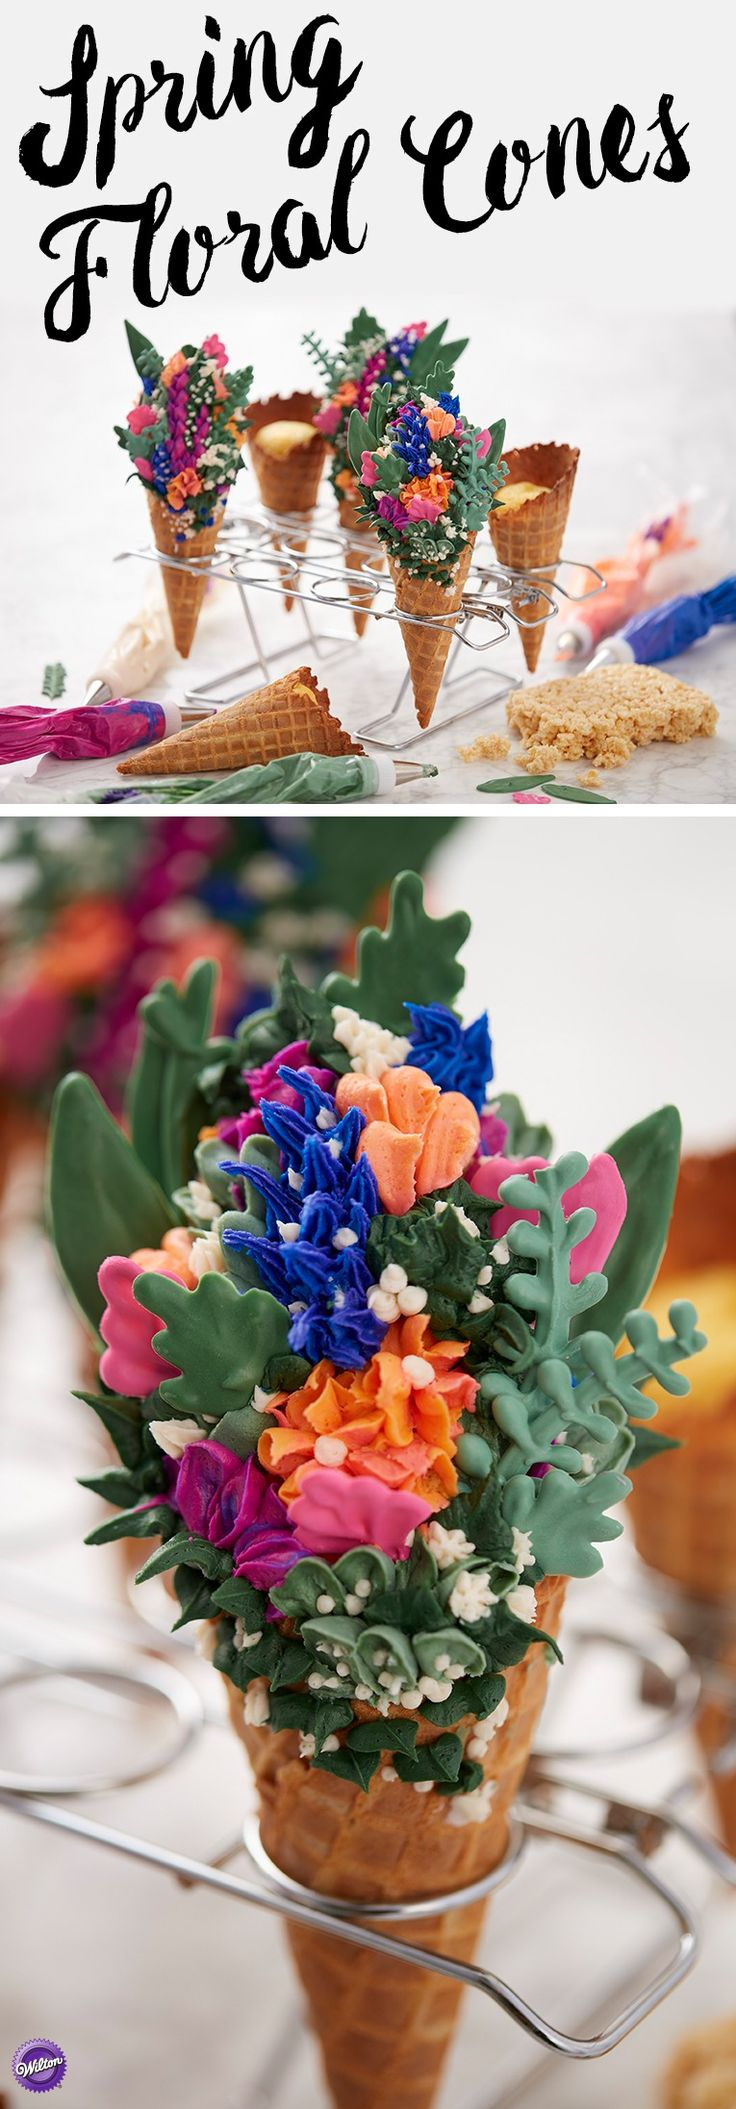 Forget the traditional cupcake, these stunning Spring Floral Cones are one bouquet that will certainly impress mom on Mother's Day. Made using icing and Candy Melts candy, these sweet flower treats are an amazing way to show someone how much you care! Pile your flowers high on top a bed of cake and rice cereal treats to help give your cupcake cones height and dimension.